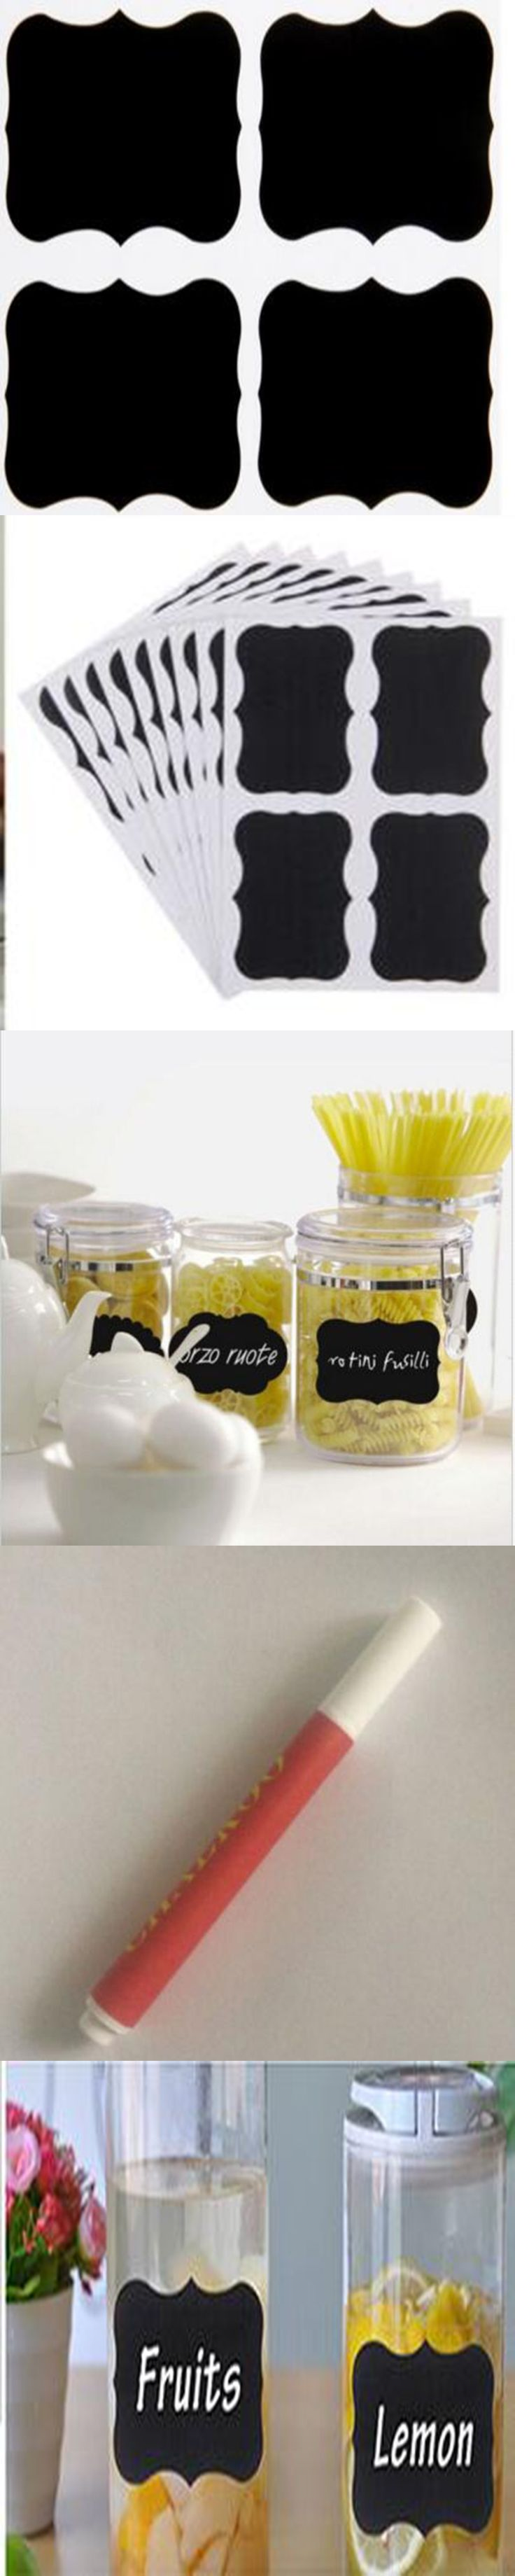 Chalkboard Label Sticker self-adhesive chalkboard label with 1 liquid chalk pen for Jars and Glass decoration